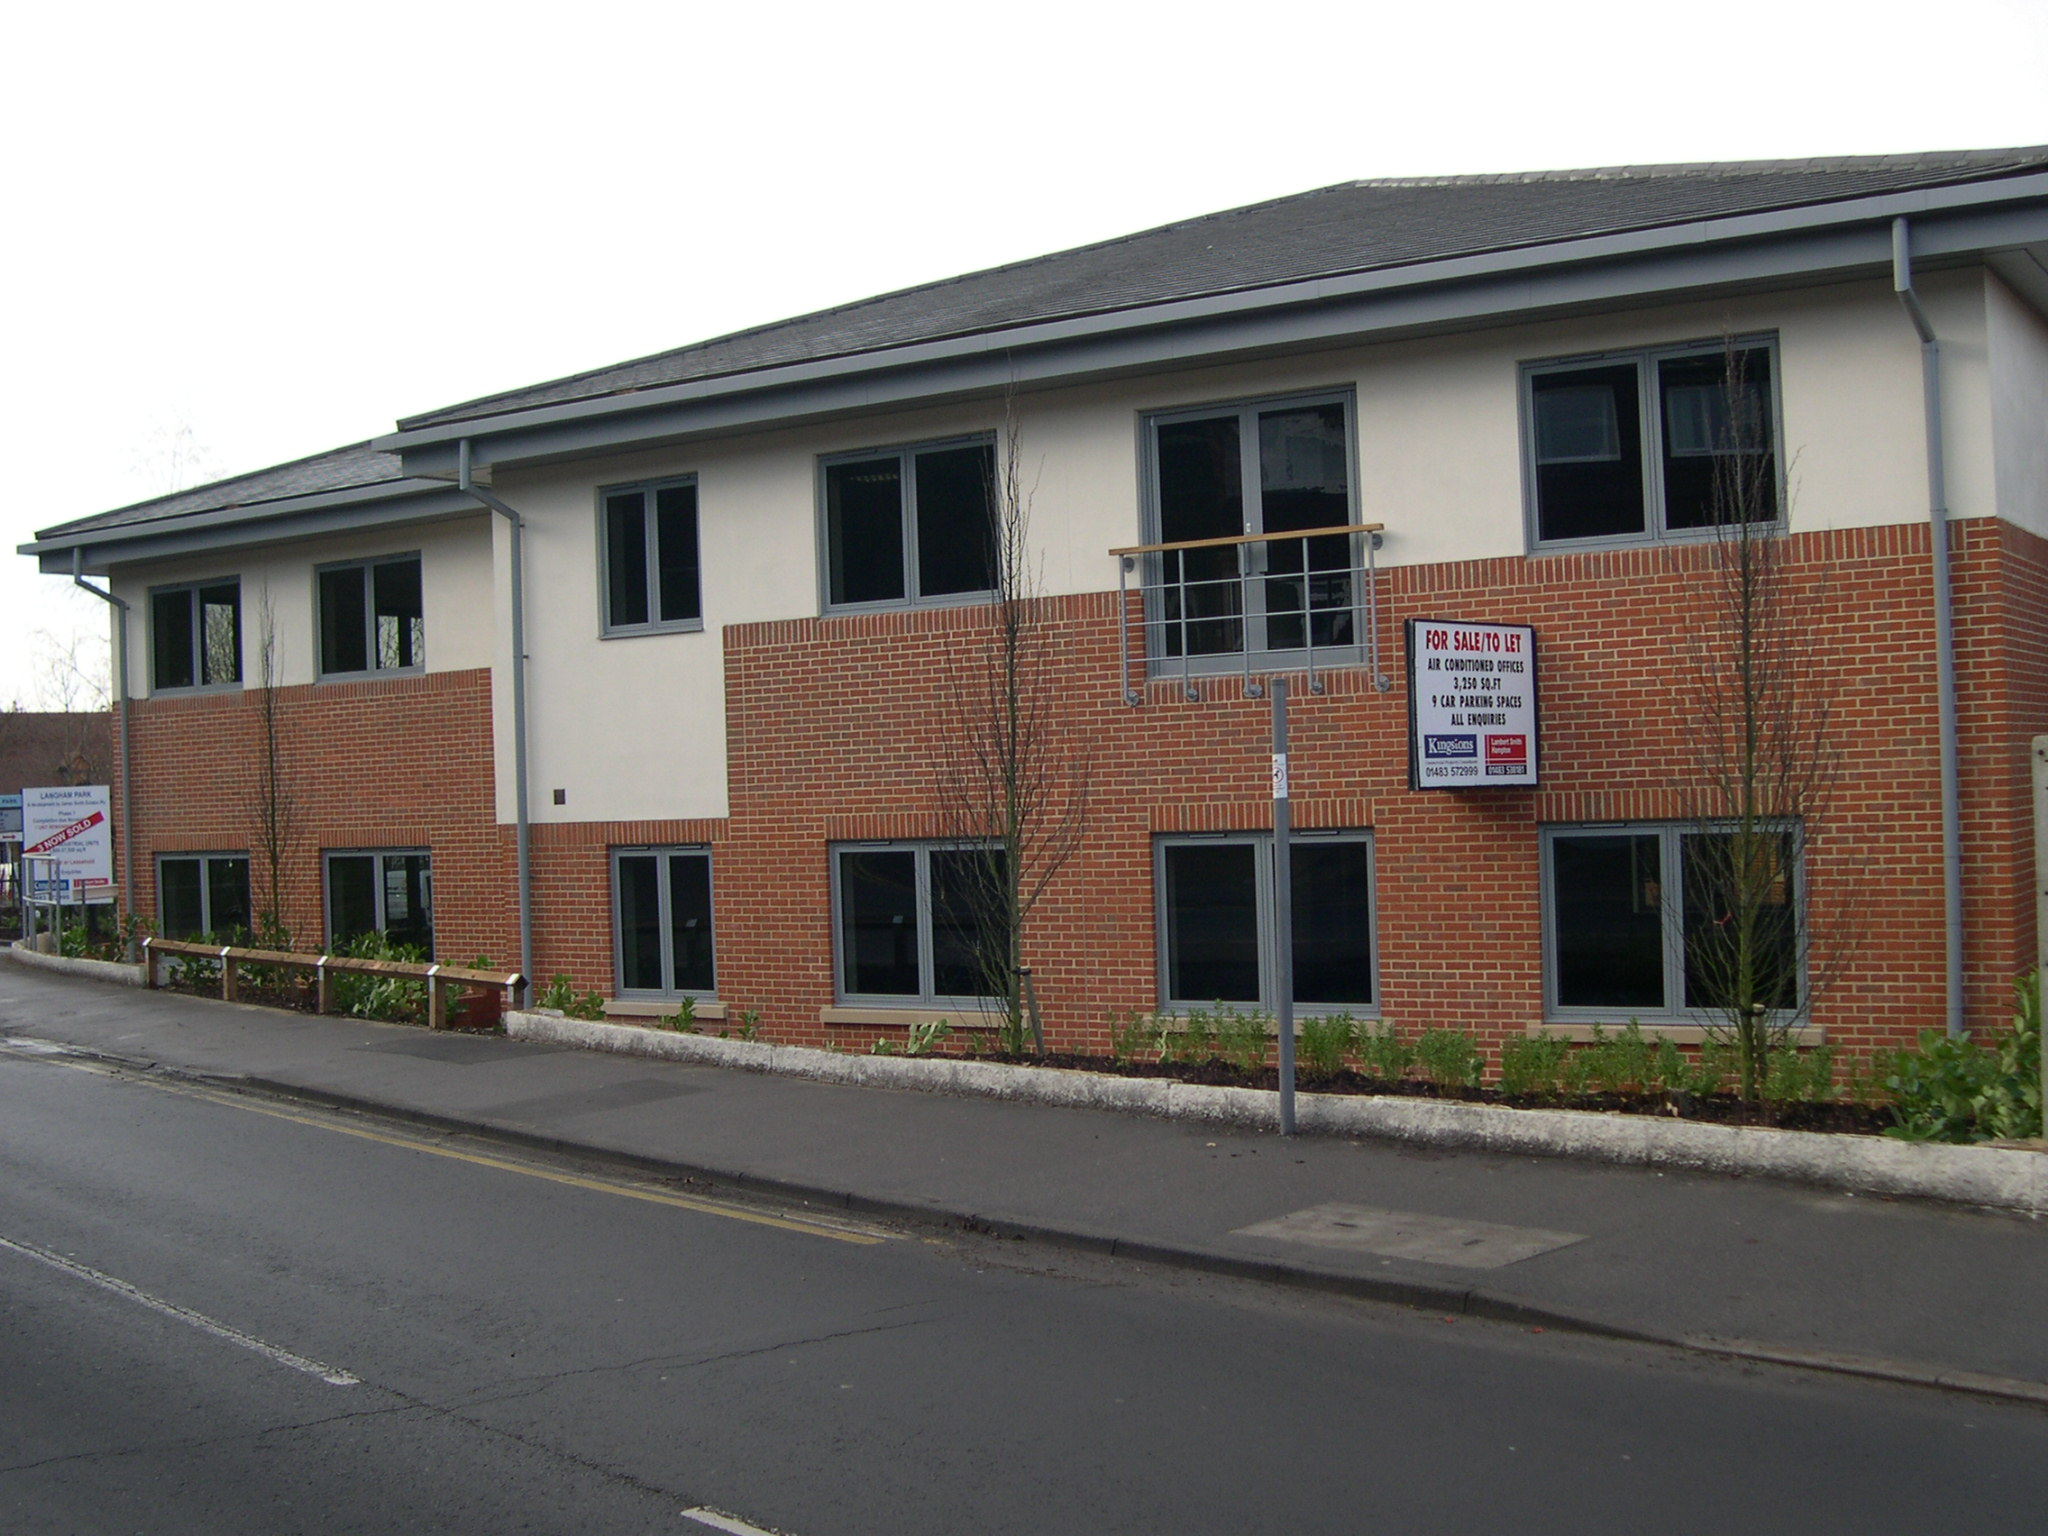 3 LANGHAM PARK, Catteshall Lane, GODALMING - Ground floor office - LETTING